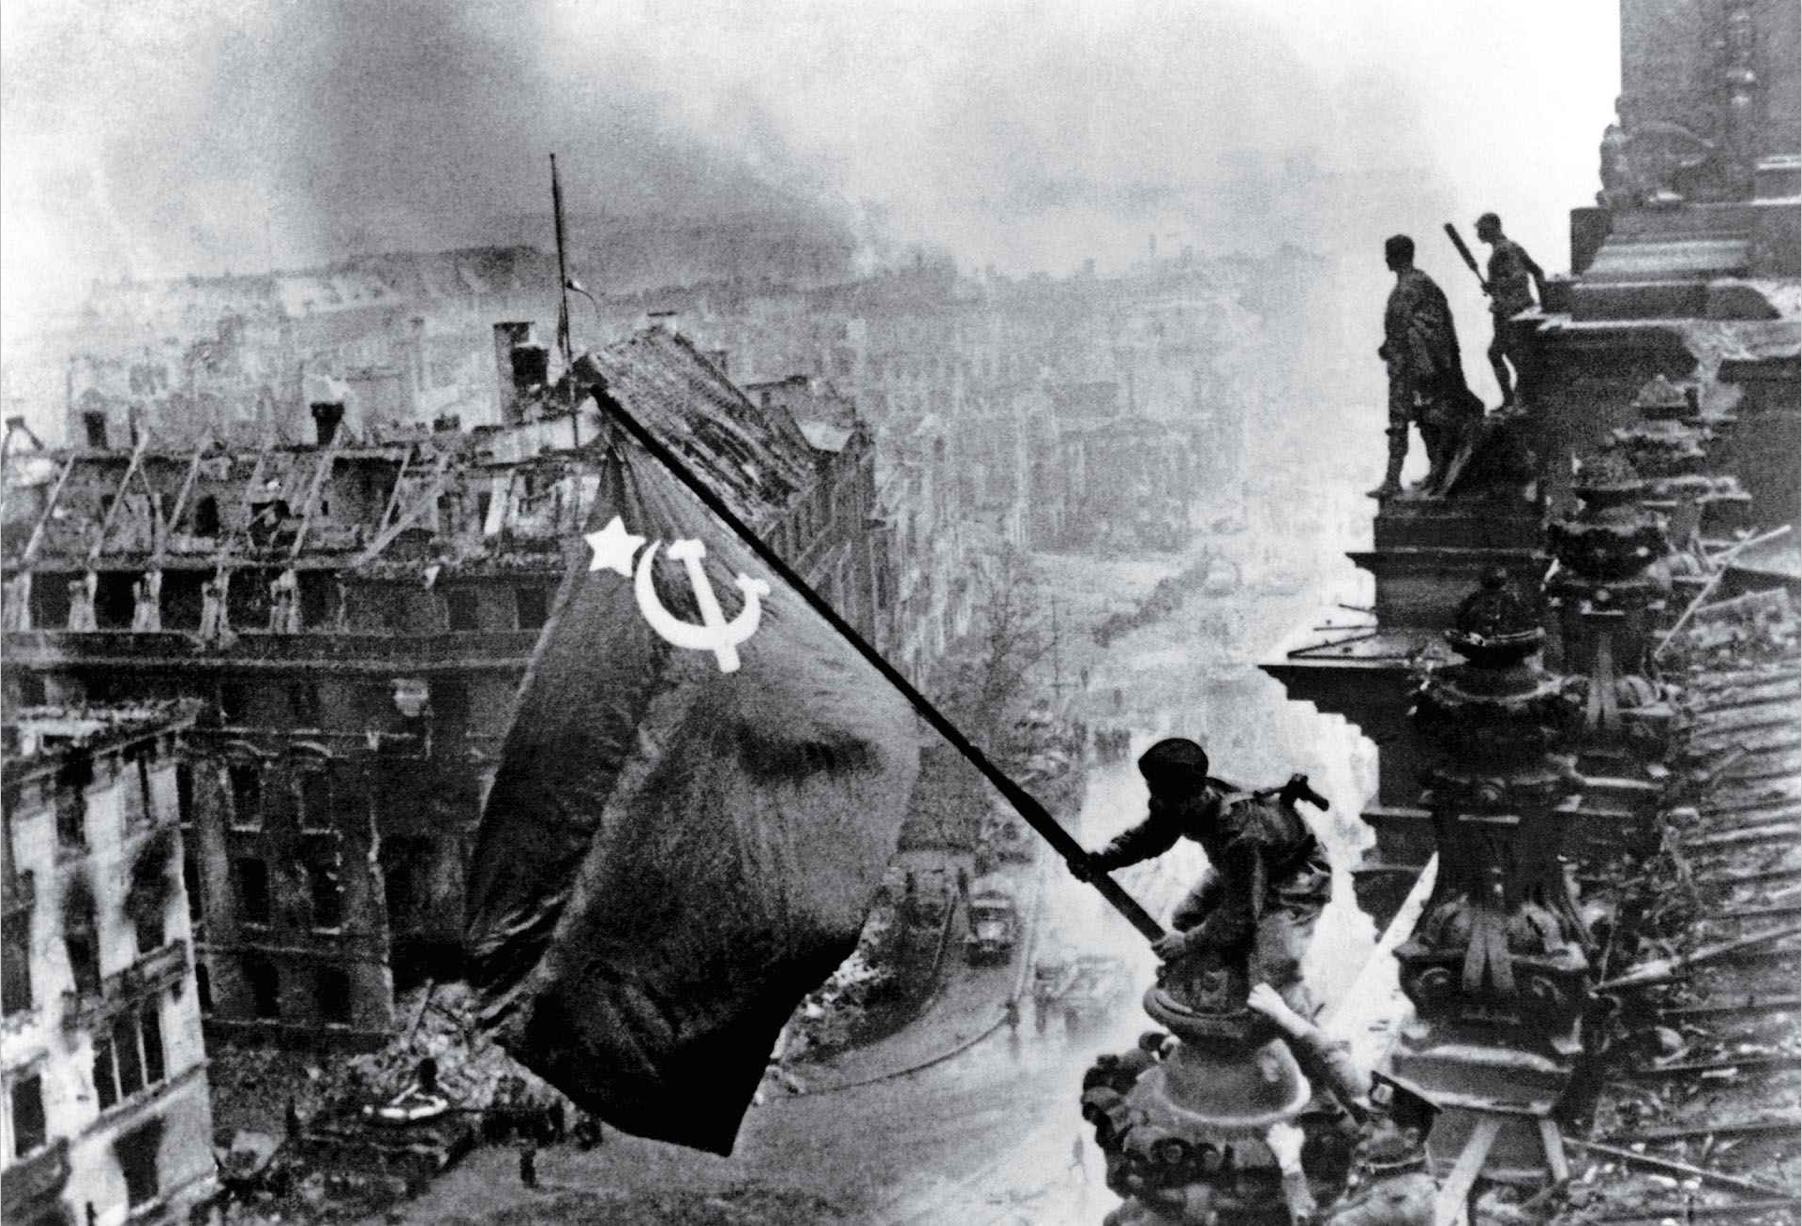 Raising a Flag over the Reichstag by Yevgeny Khaldei (1945)